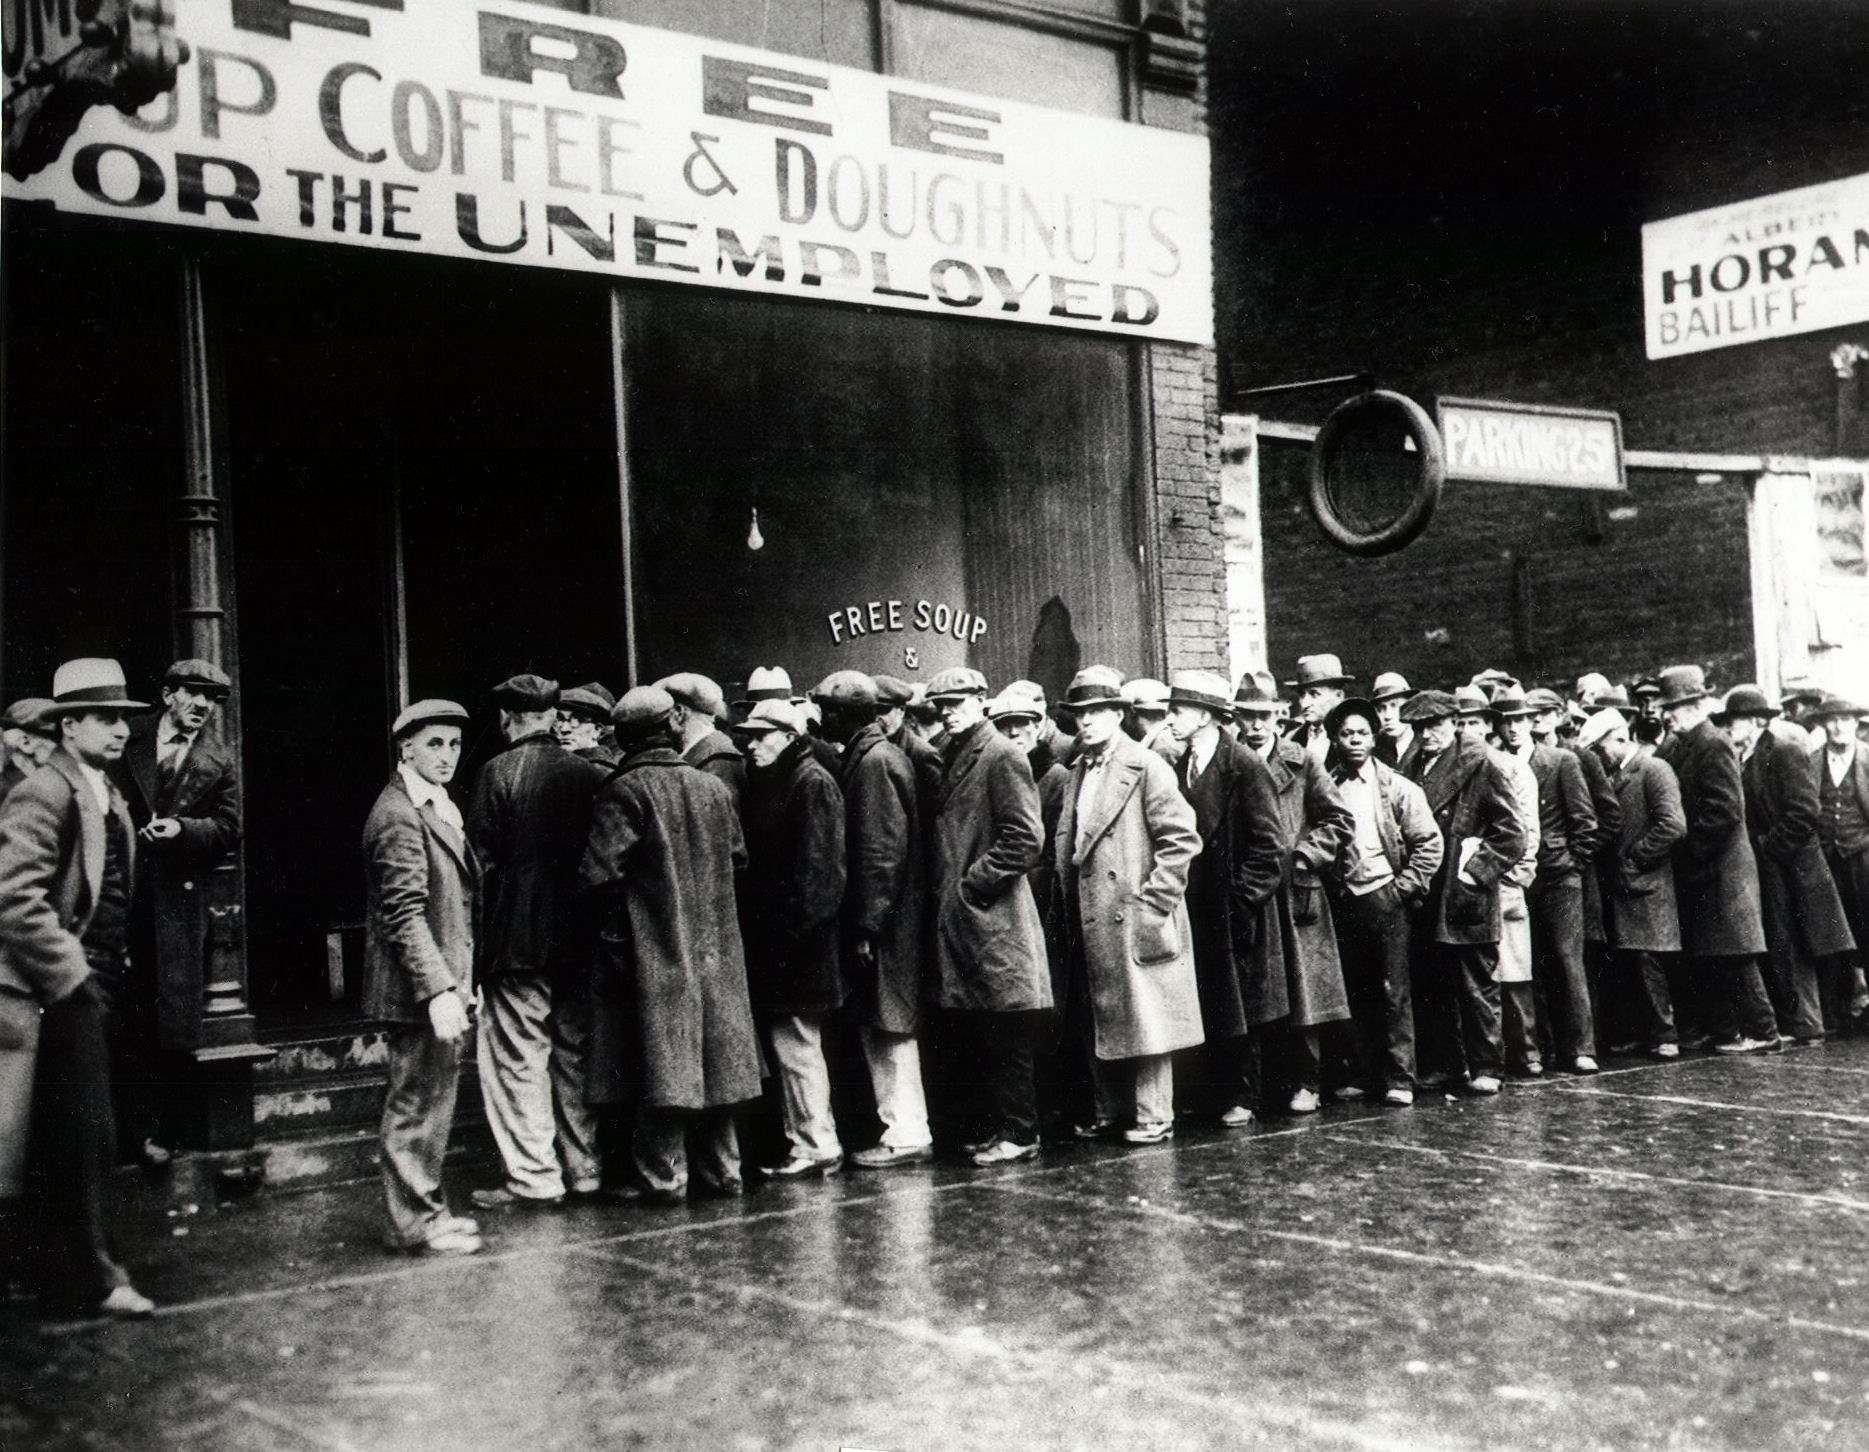 Stock brokers during the great depression